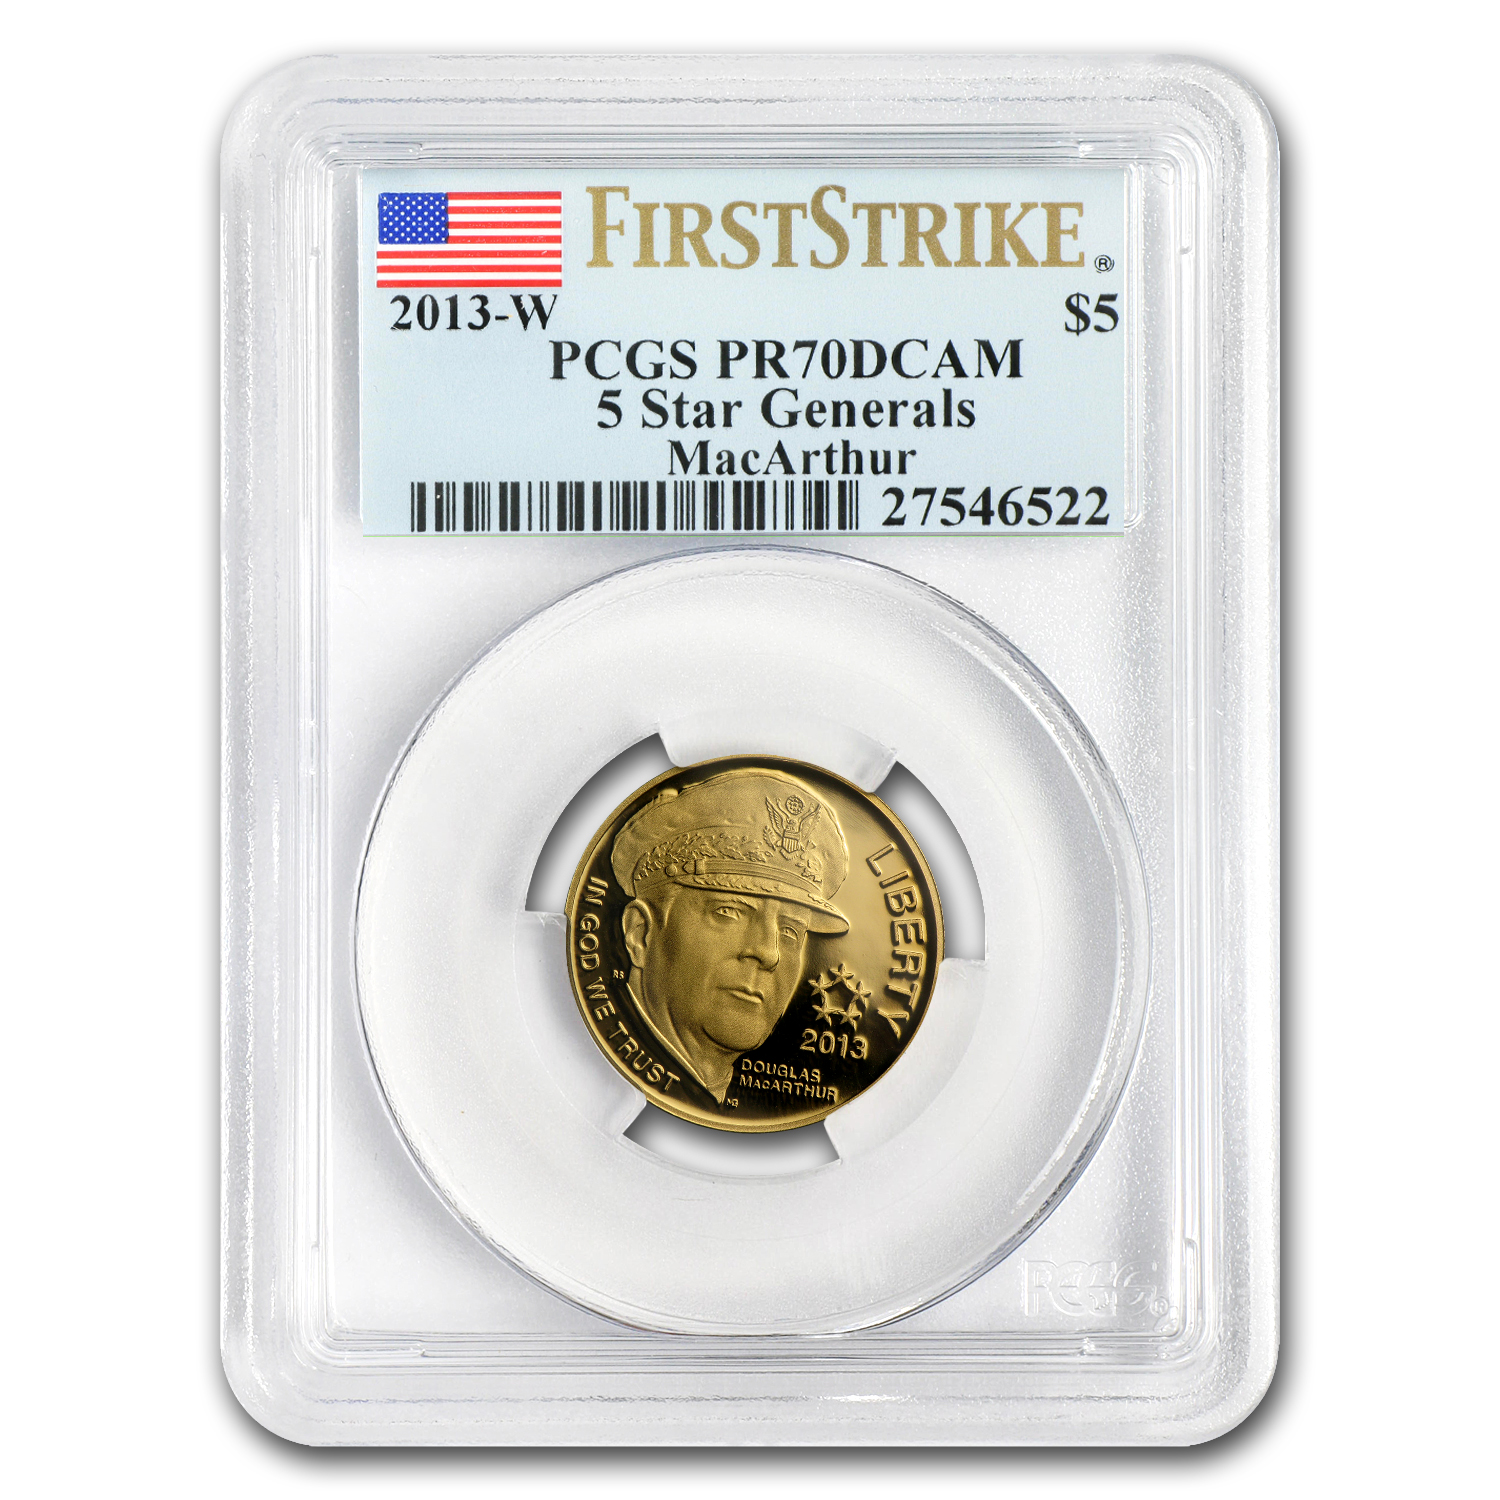 2013-W $5 Gold Commem Five Star General PR-70 PCGS (FS)